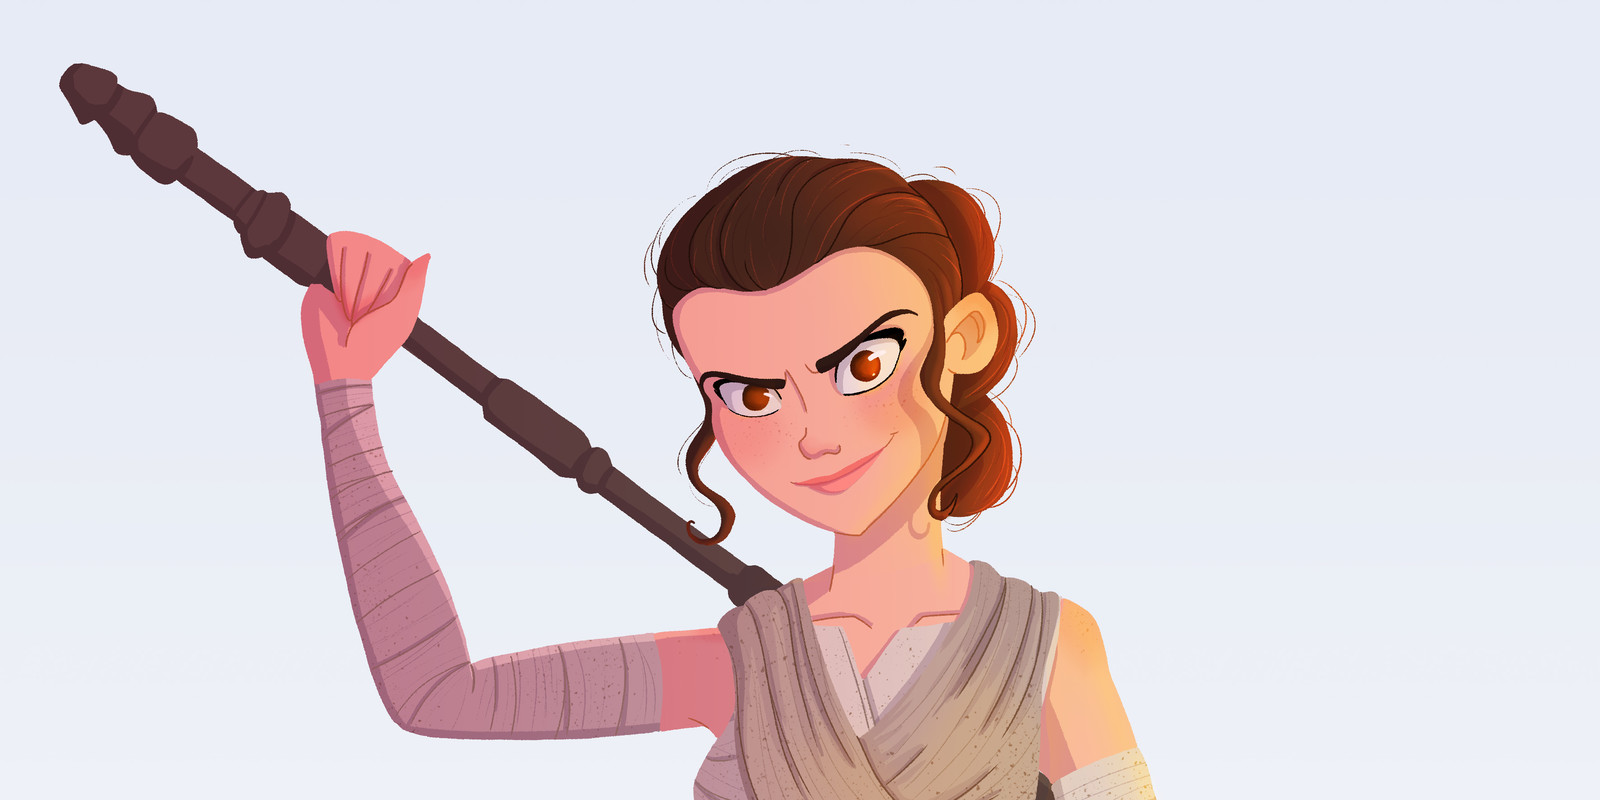 Rey Starwars Fan art